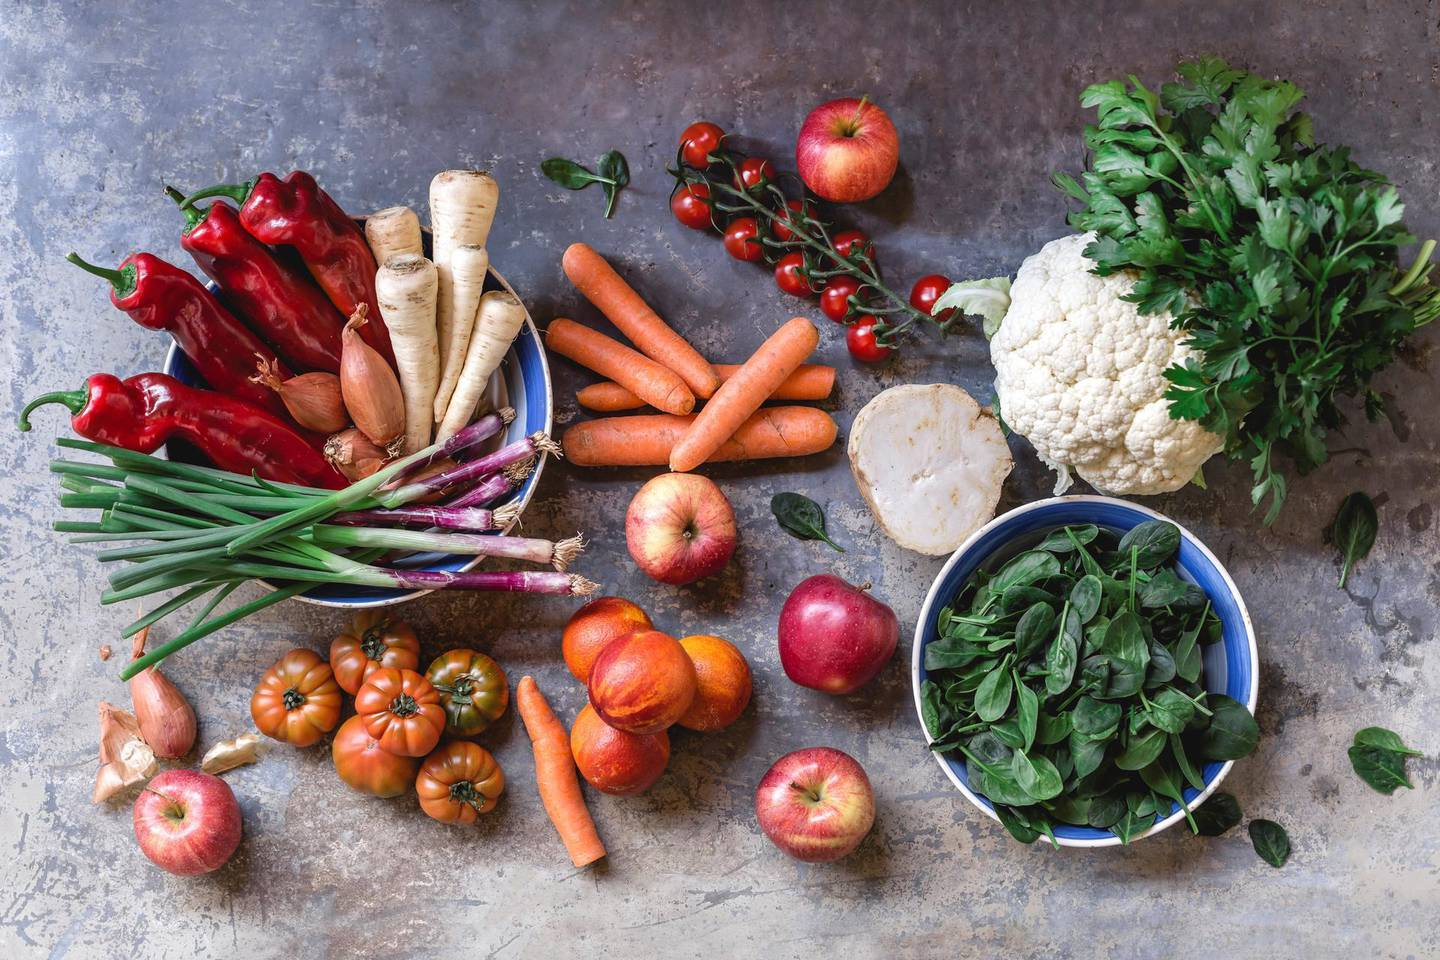 Fresh vegetables and fruits from weekly market